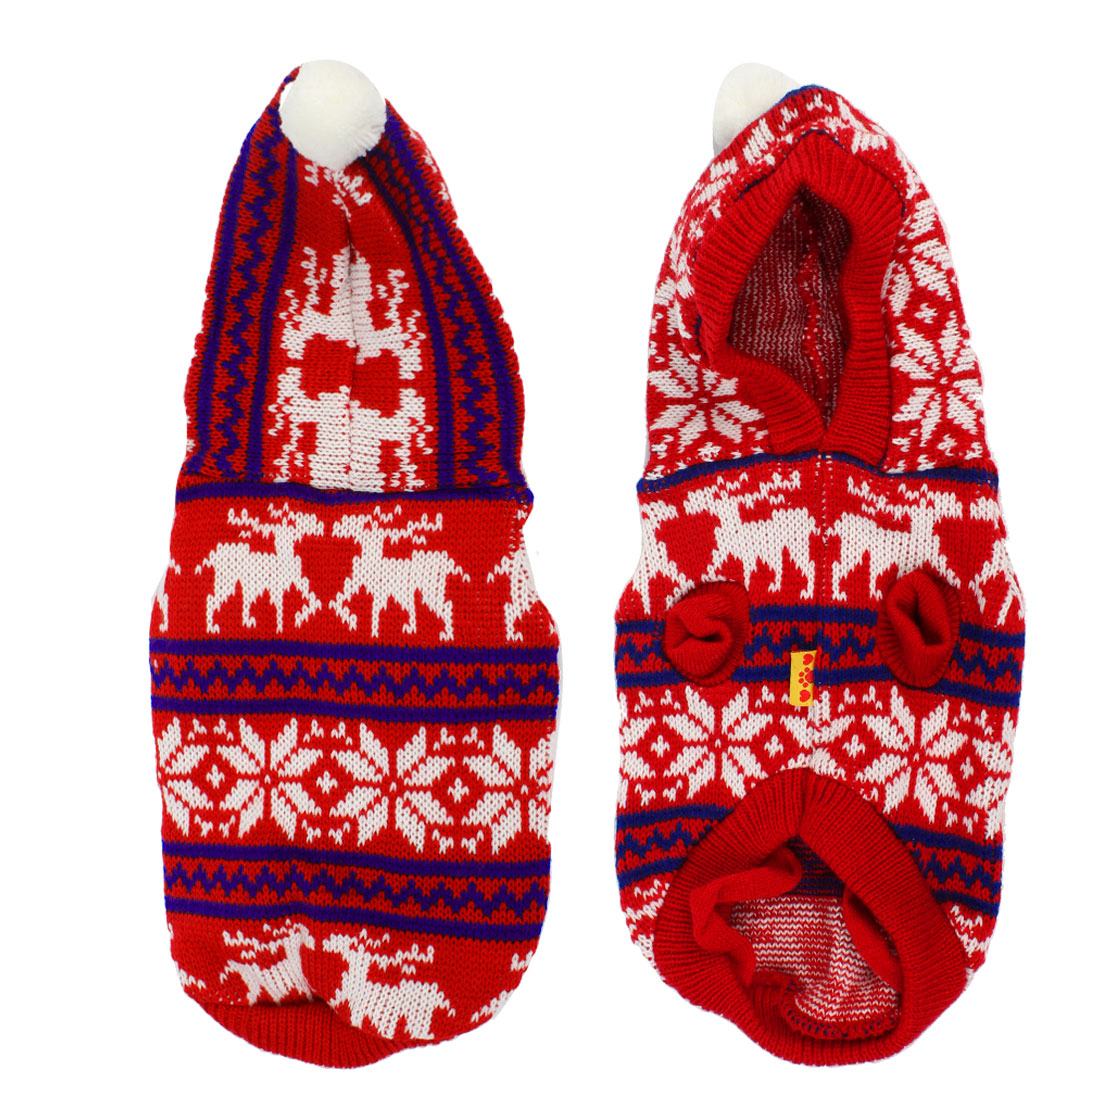 Reindeer Pattern Knitted Chihuaha Dog Hooded Sweater Clothes Red Blue M